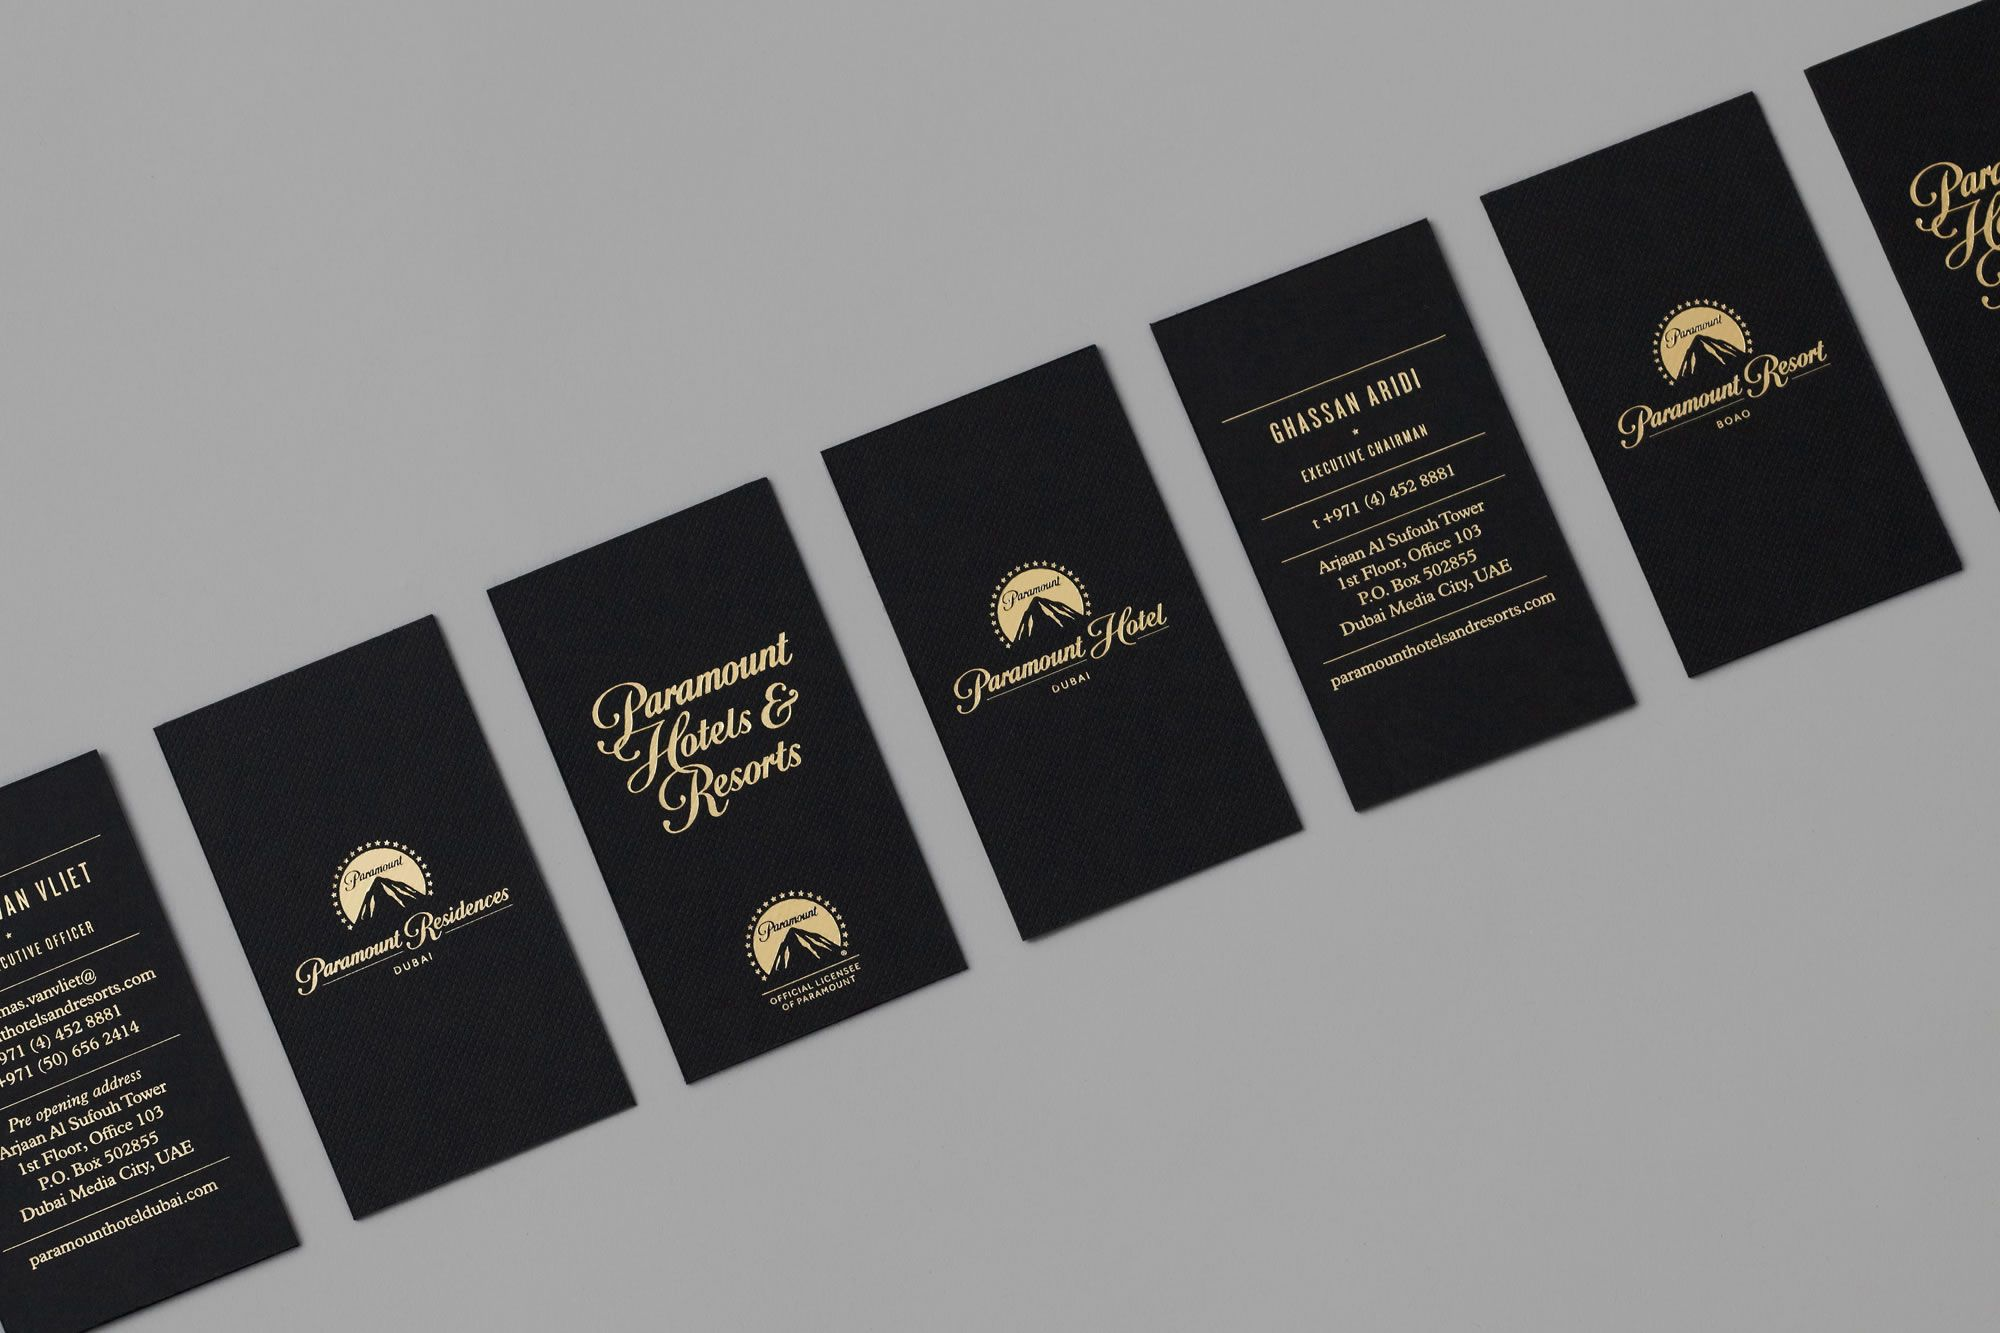 Sleep with smith we brand the worlds leading hotels view our paramount resort and hotels business card design by smith reheart Gallery